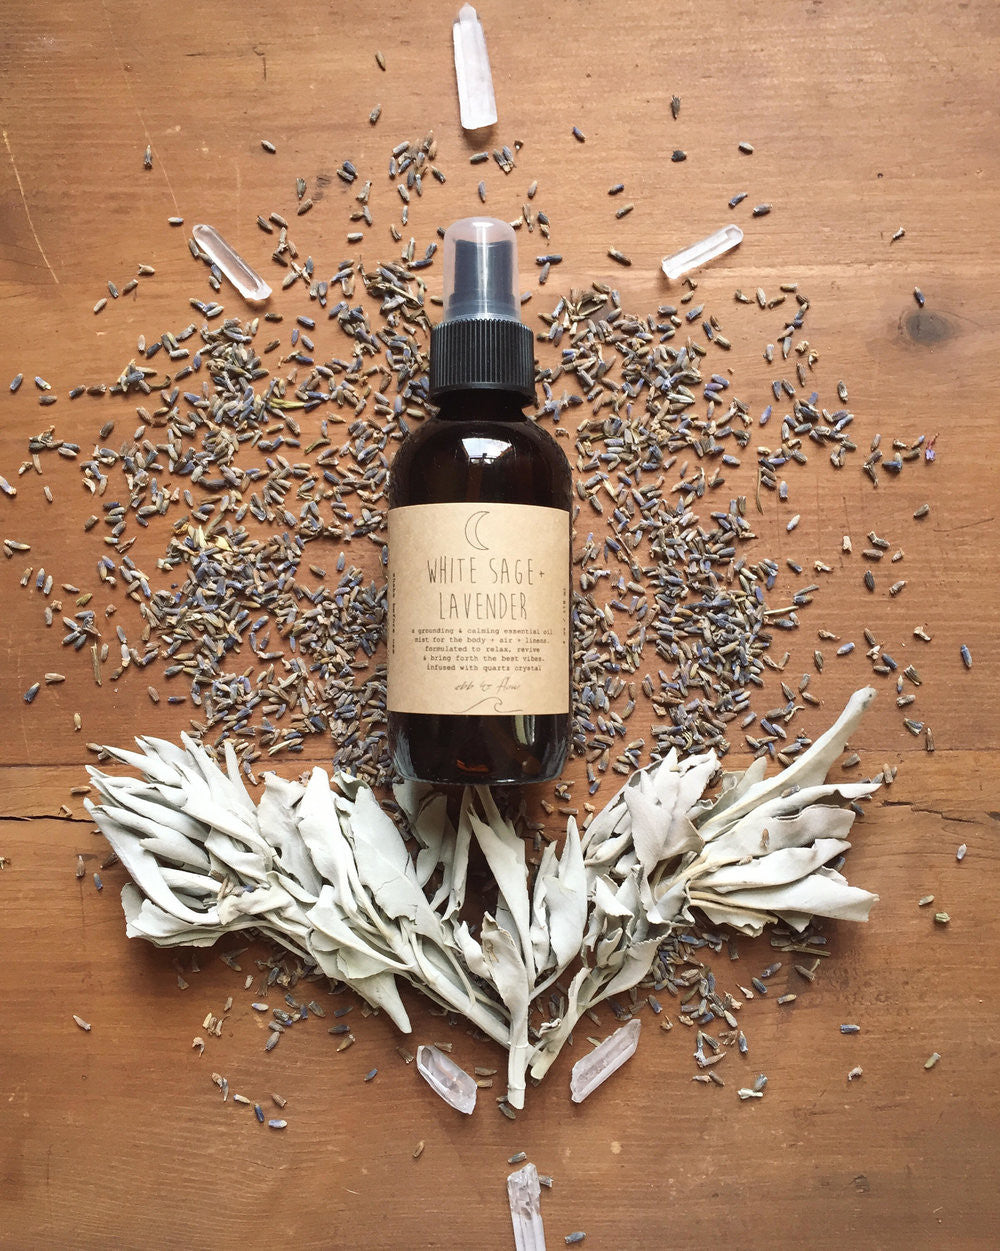 Ebb and Flow by Ty White Sage Lavender spray